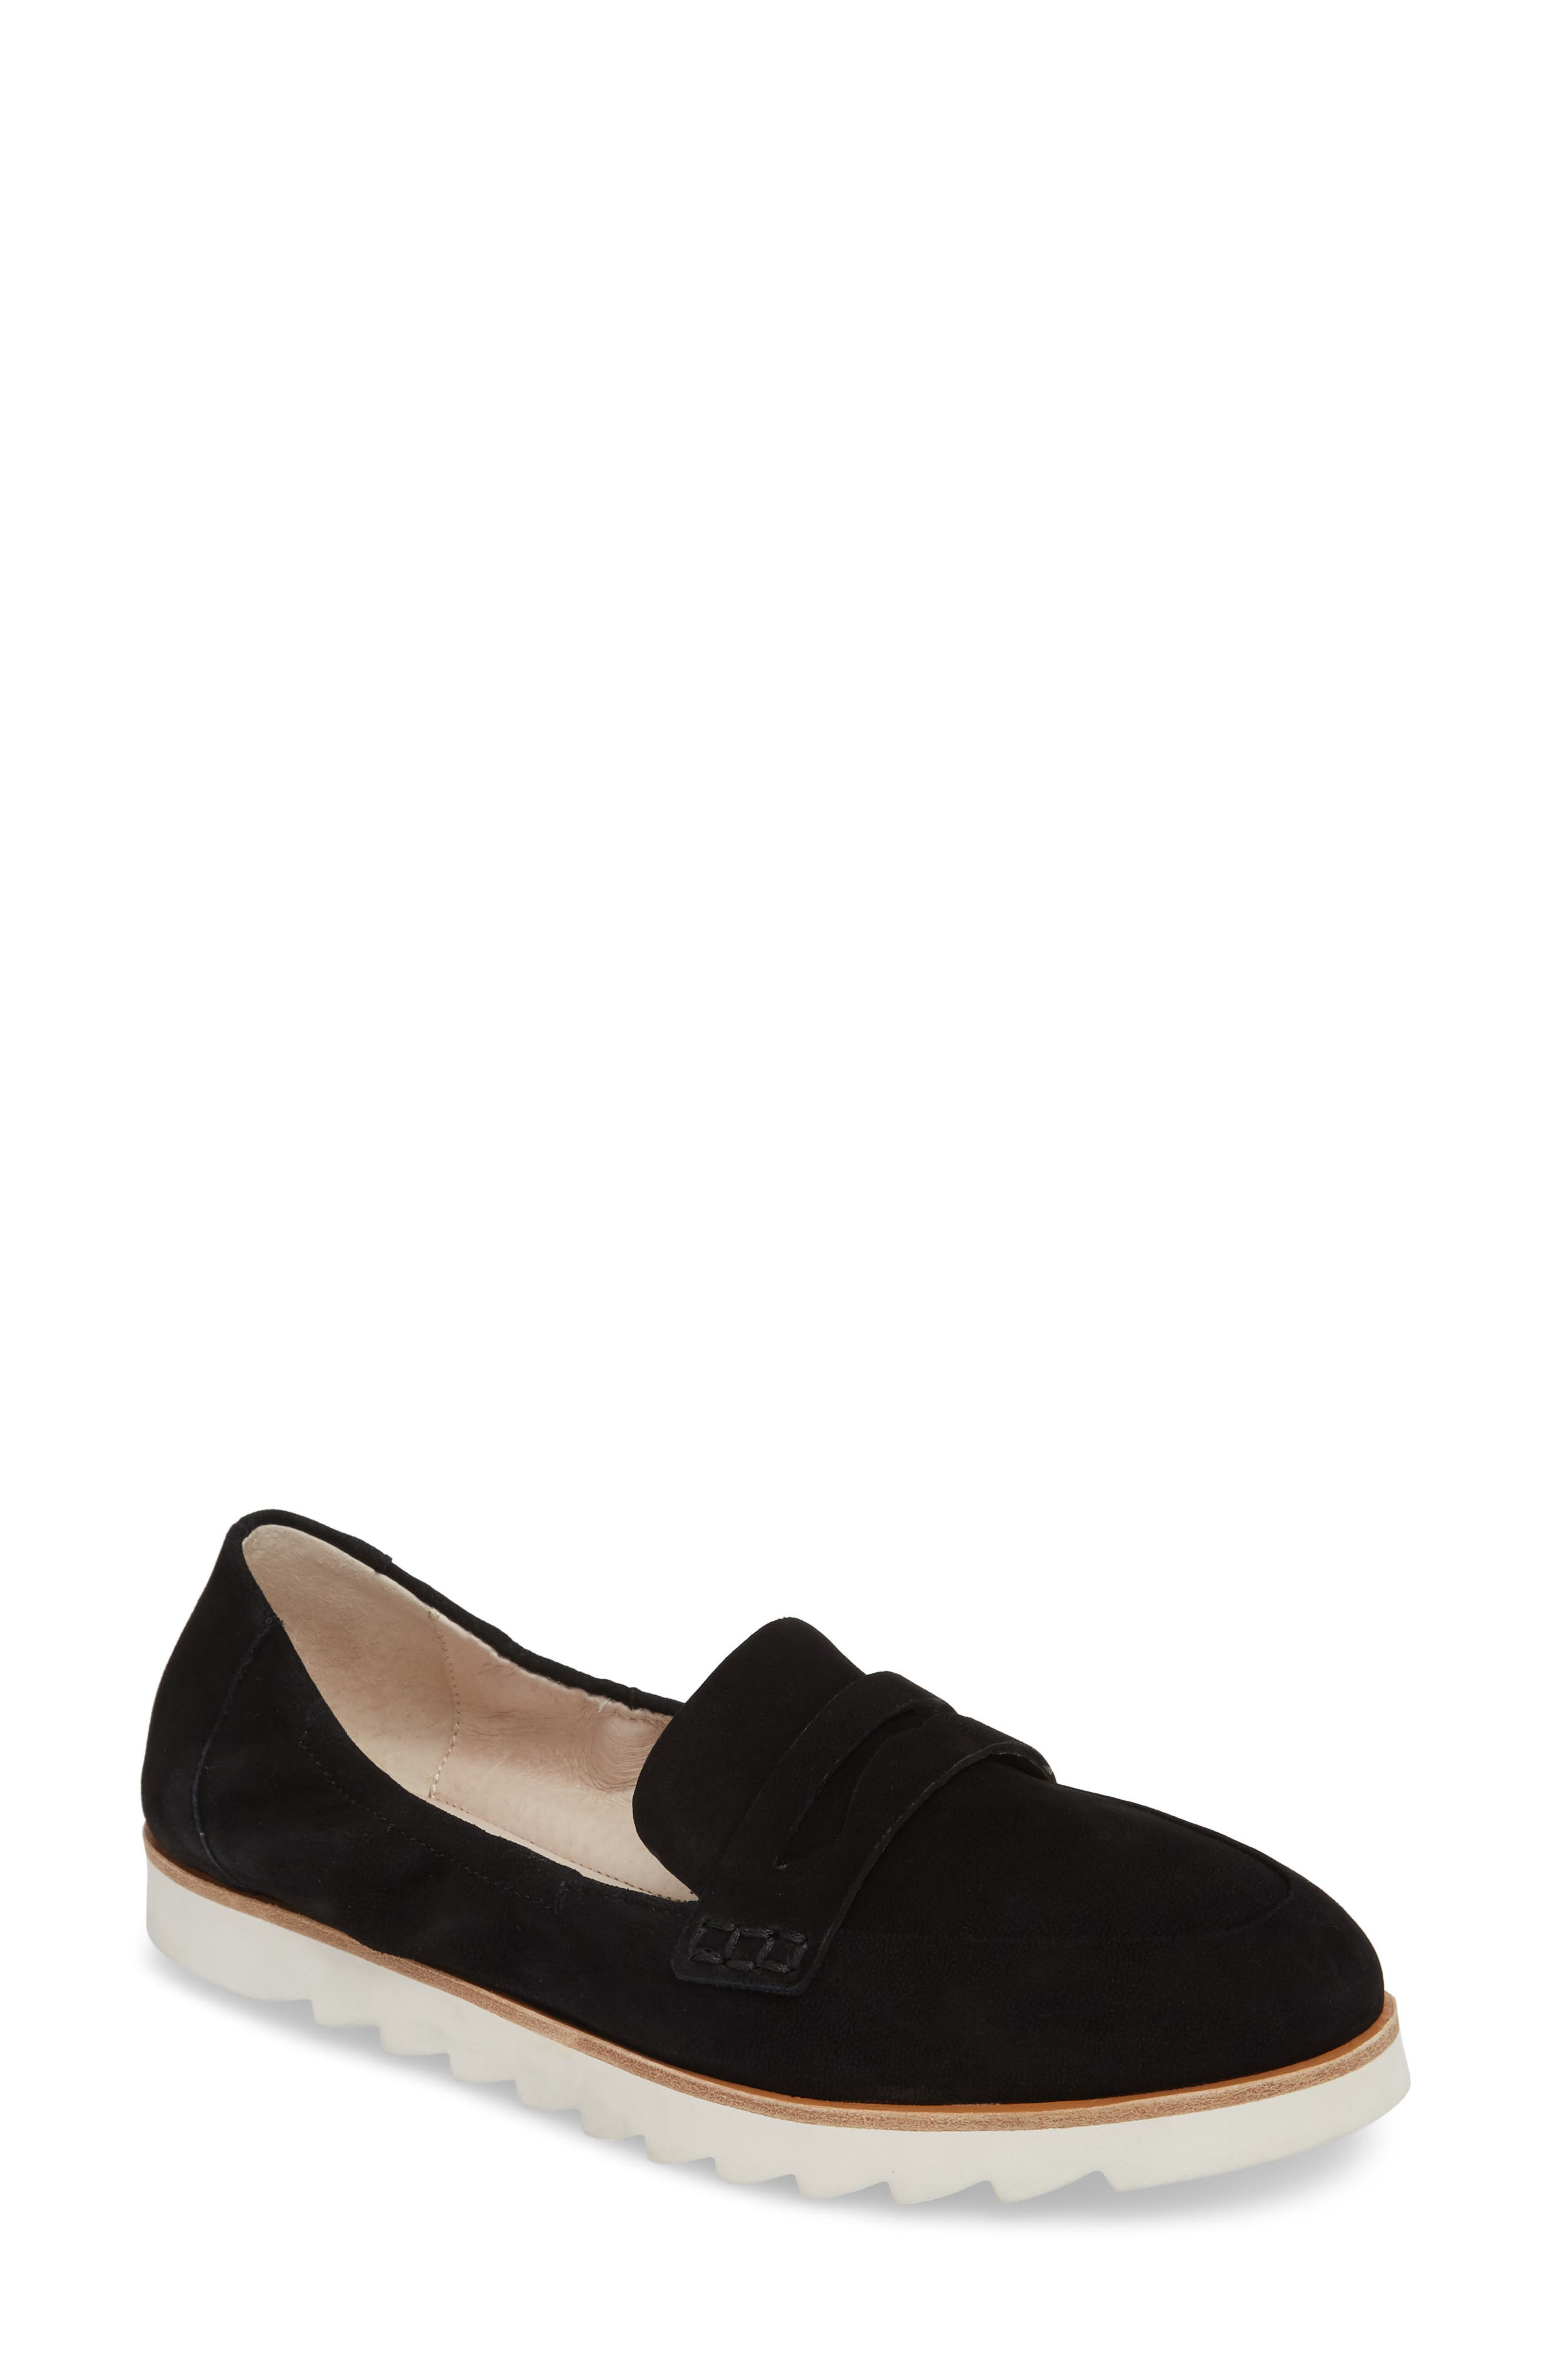 Rylee Penny Loafer,                             Main thumbnail 1, color,                             BLACK NUBUCK